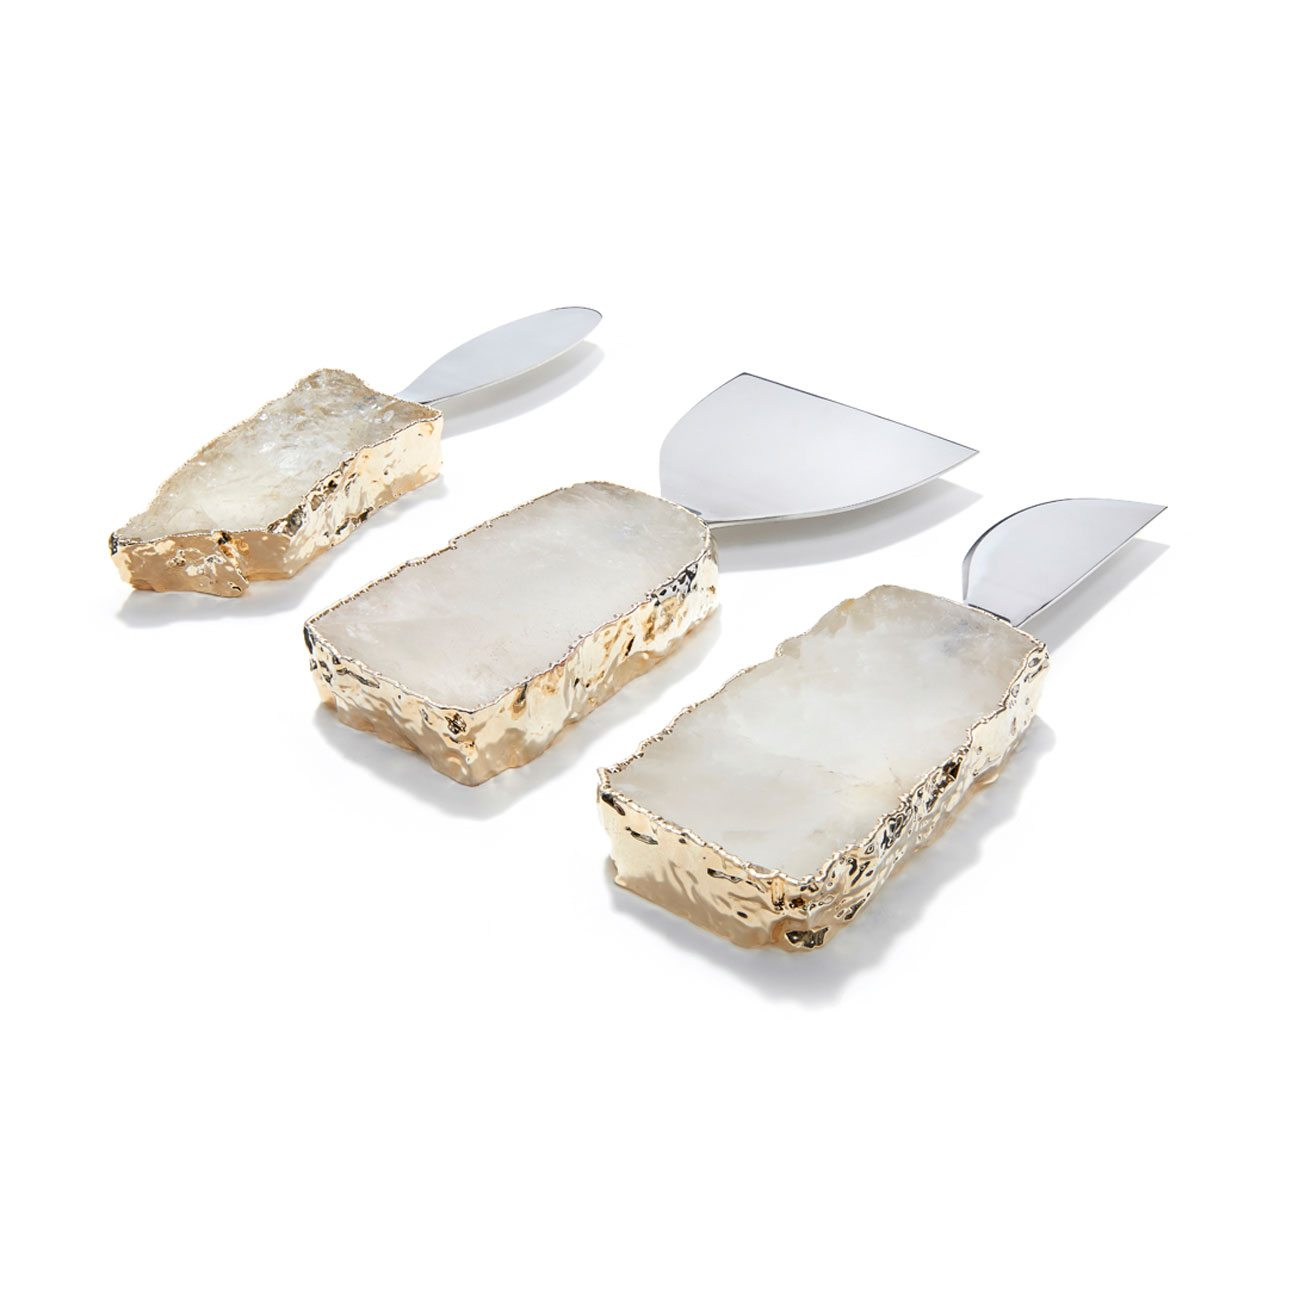 Anna by Rablabs Kiva Cheese Set Crystal Gold Set of 3